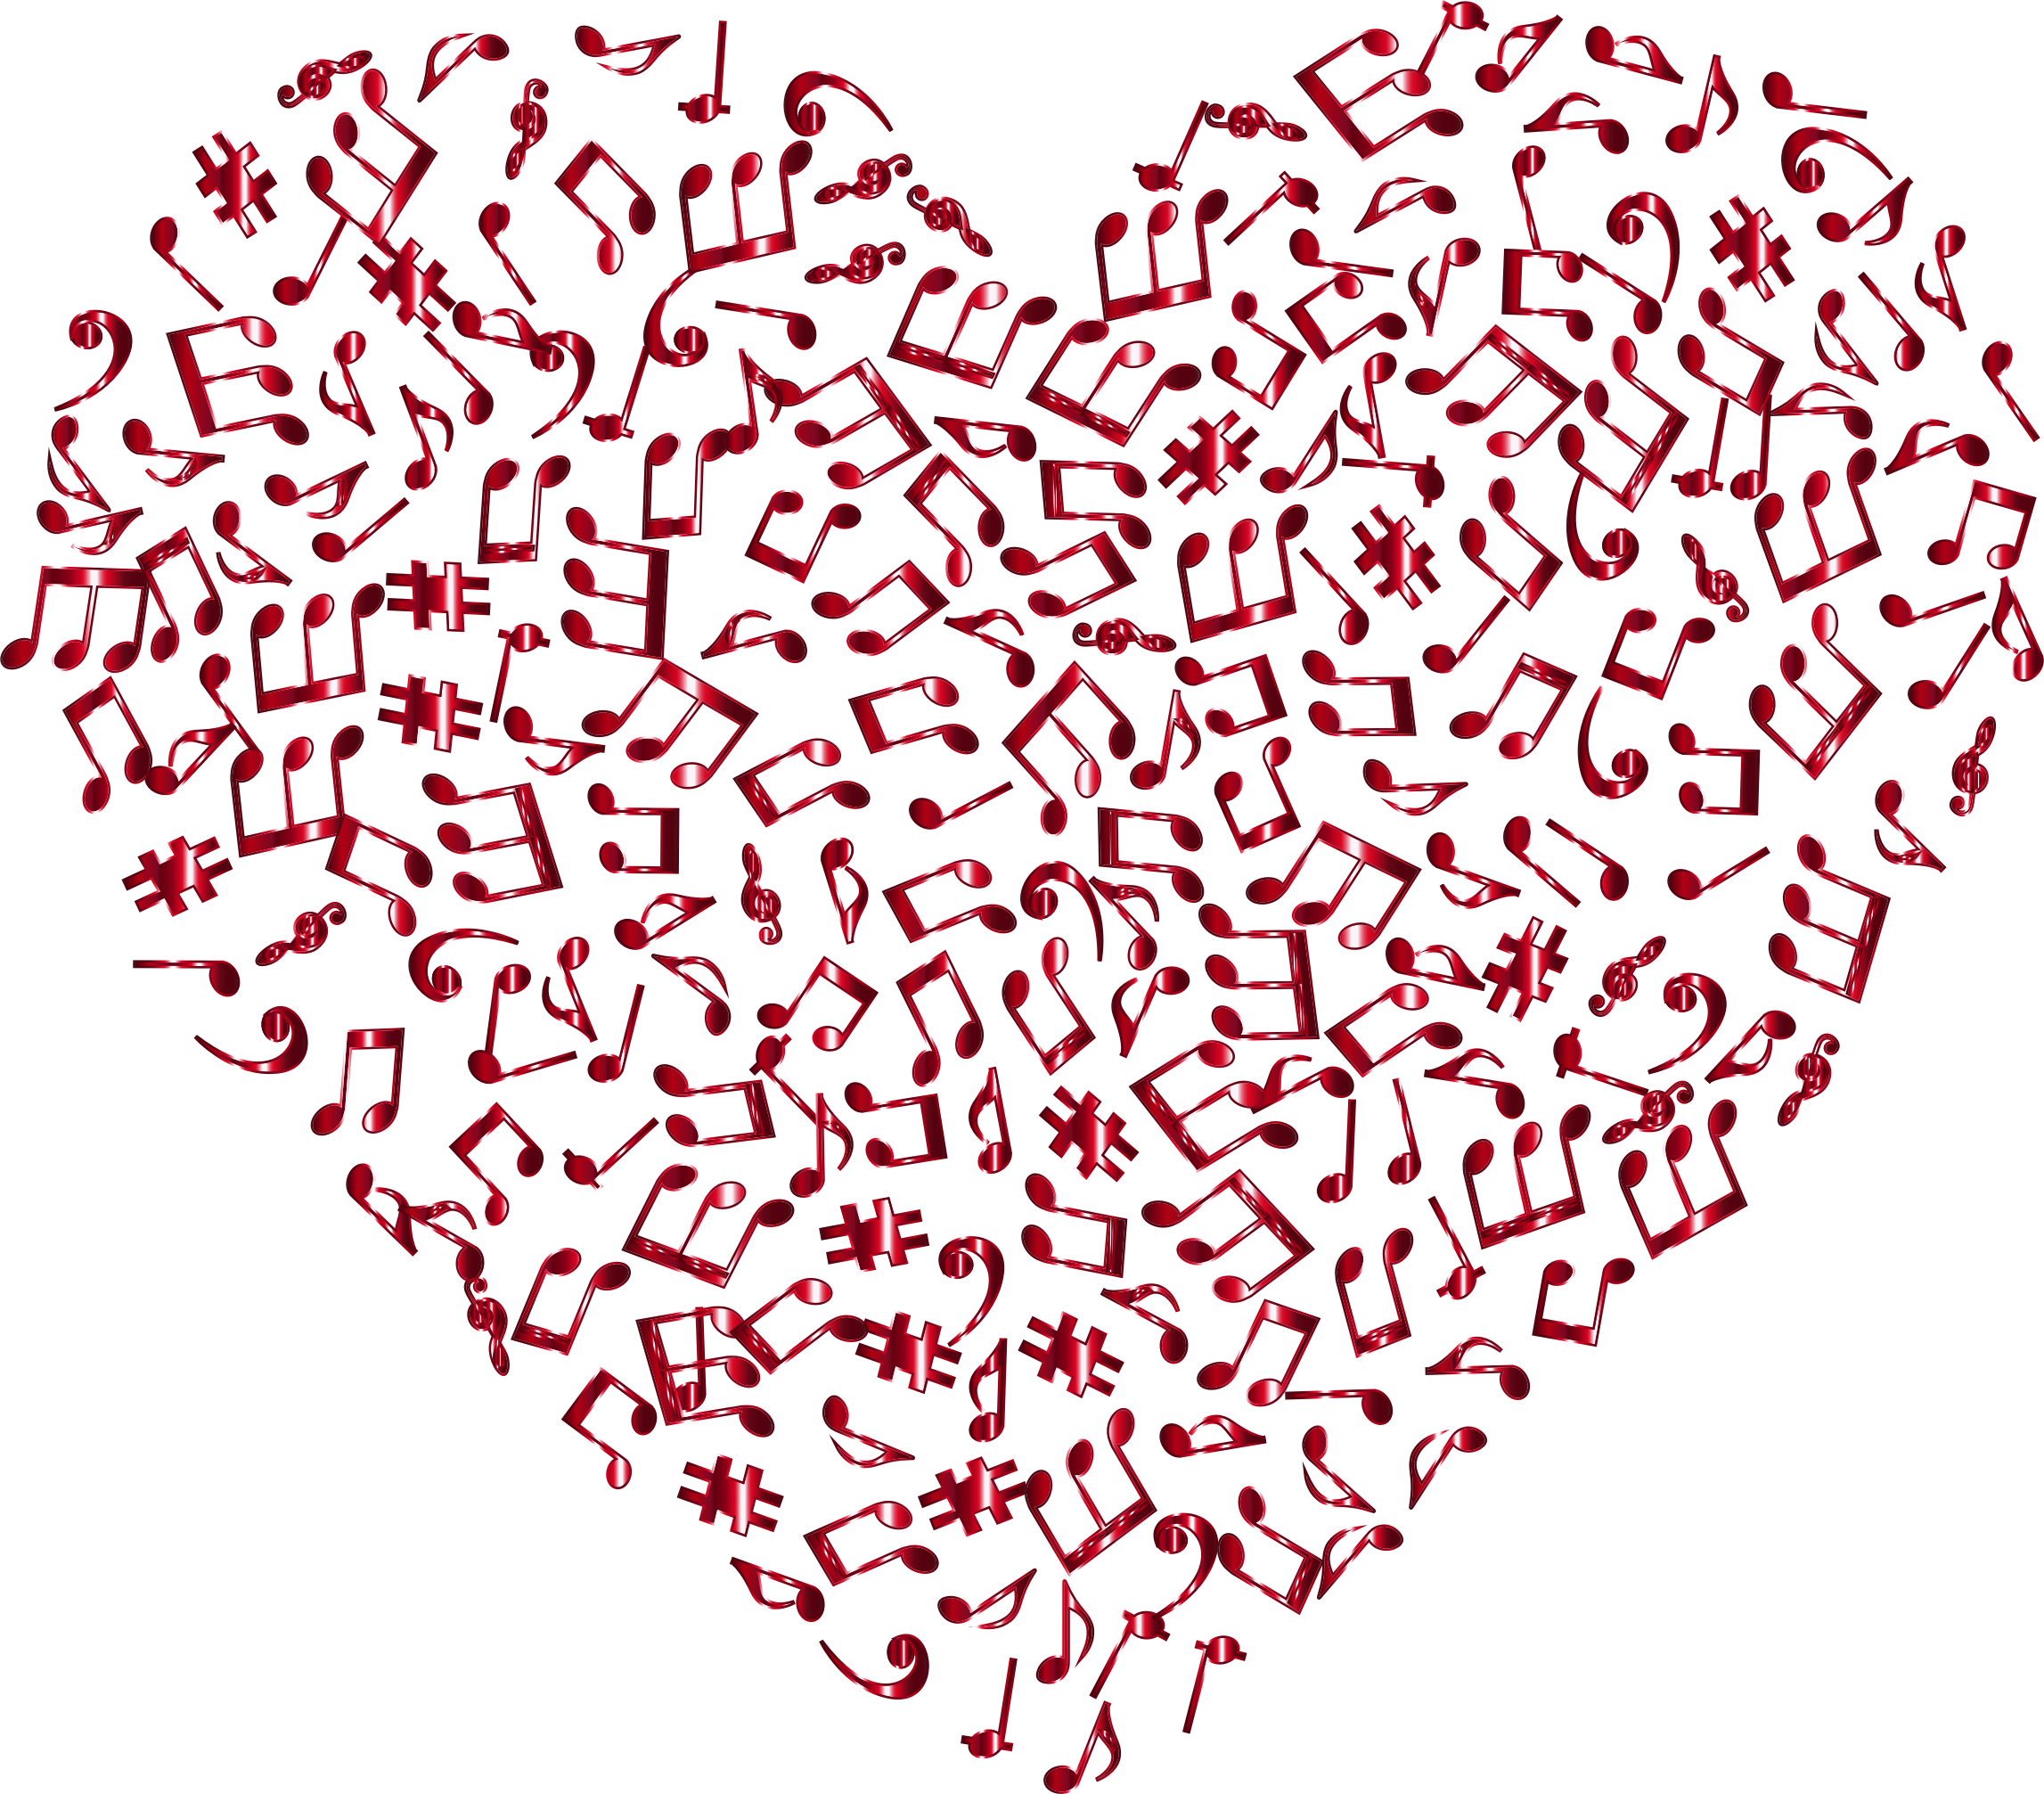 Musical heart clipart image freeuse library Clipart - Crimson Musical Heart 4 No Background image freeuse library